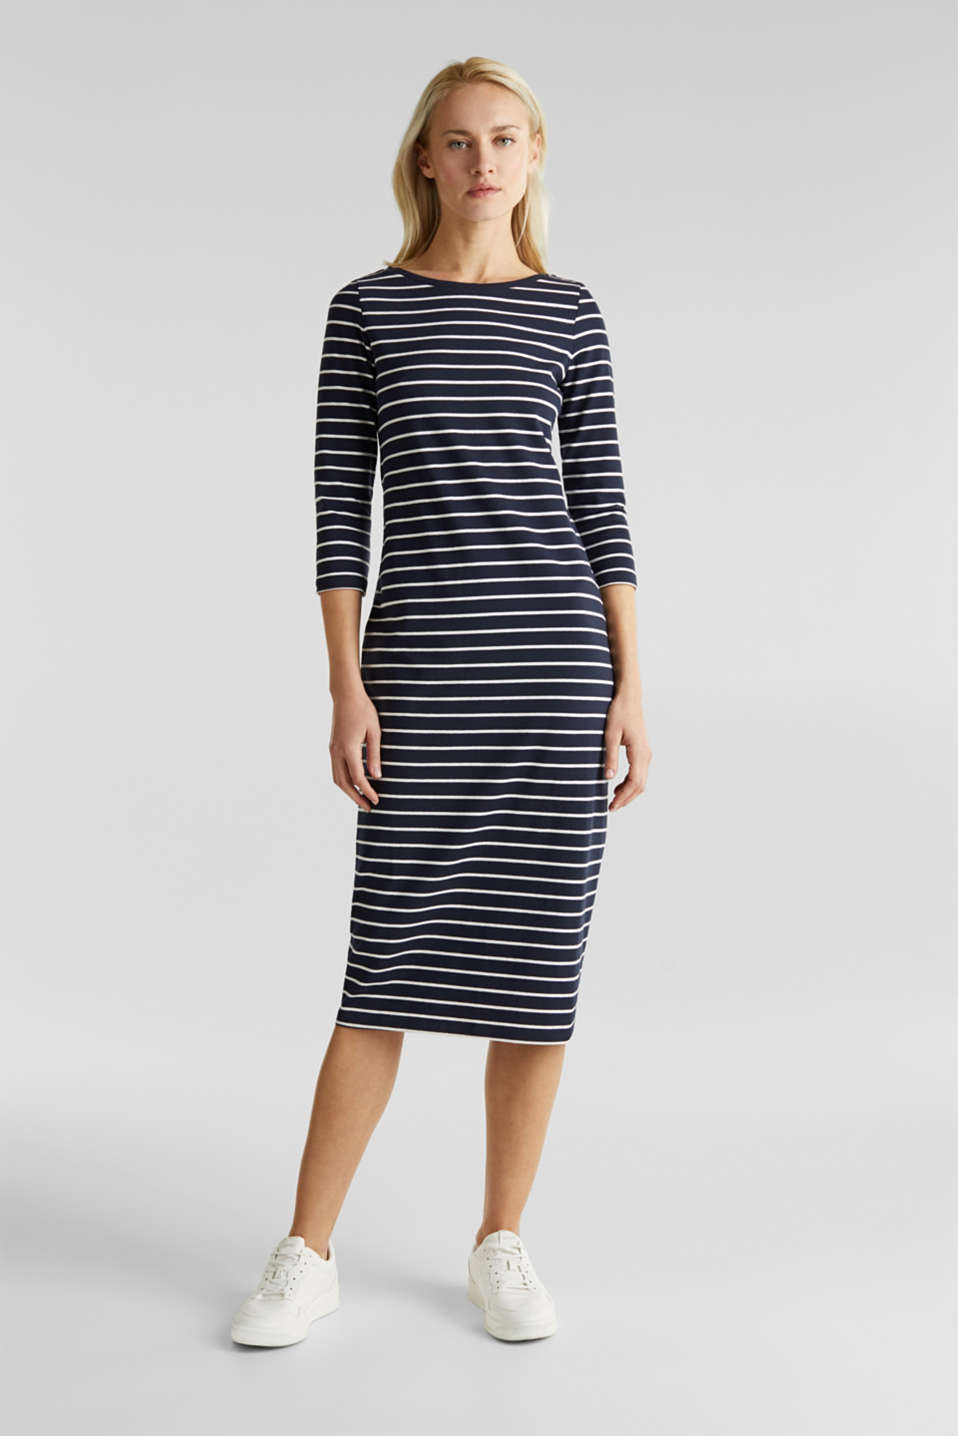 Midi dress in stretch jersey, NAVY, detail image number 1